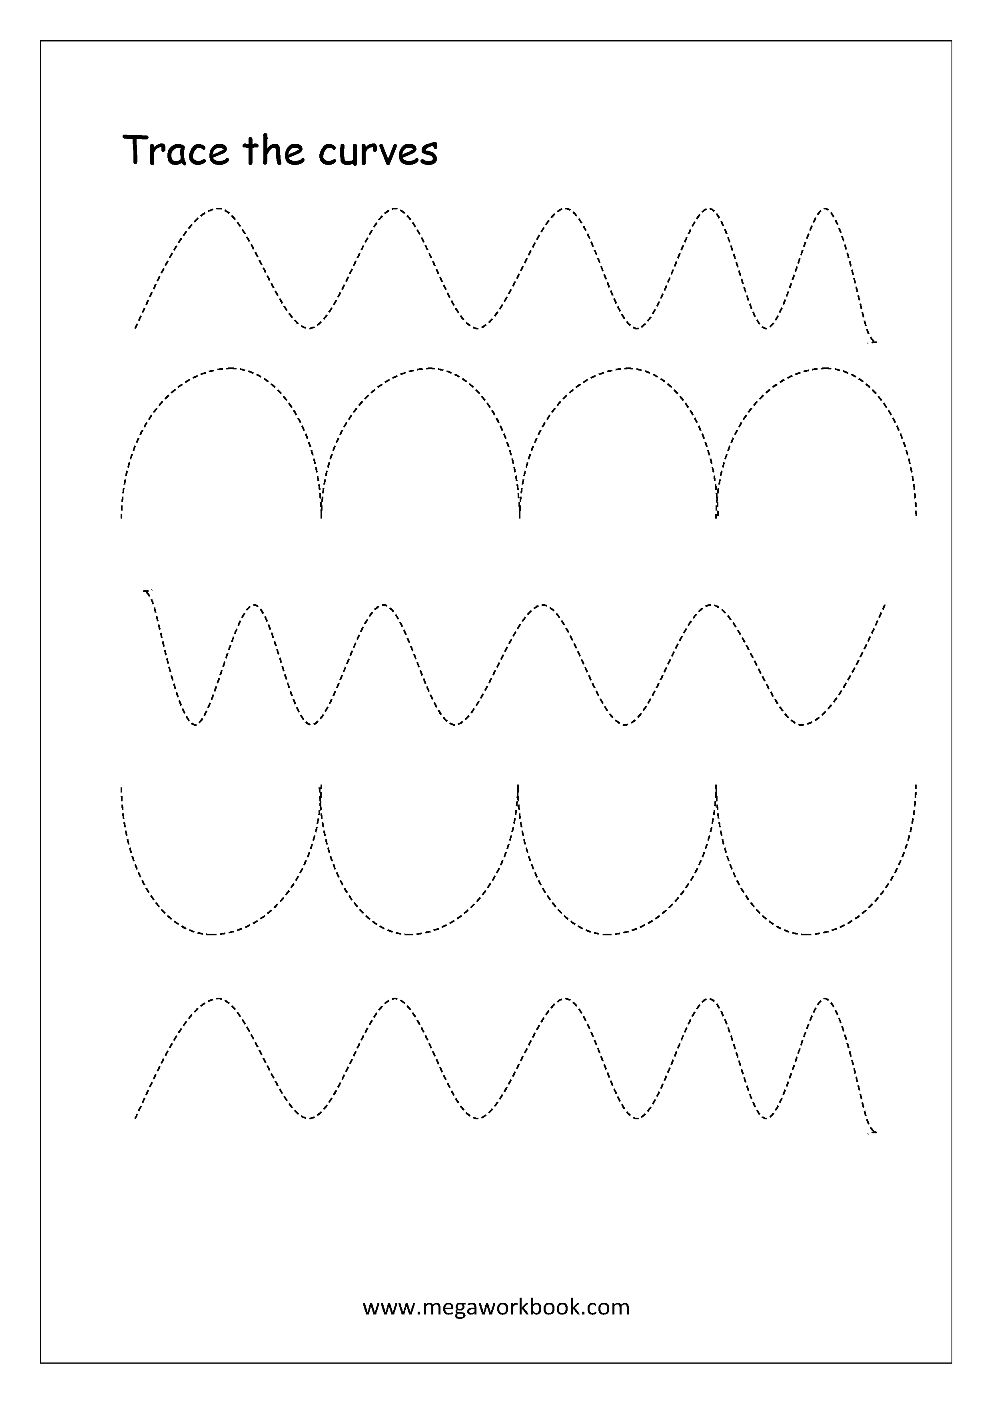 Free Printable Pre-Writing Tracing Worksheets For